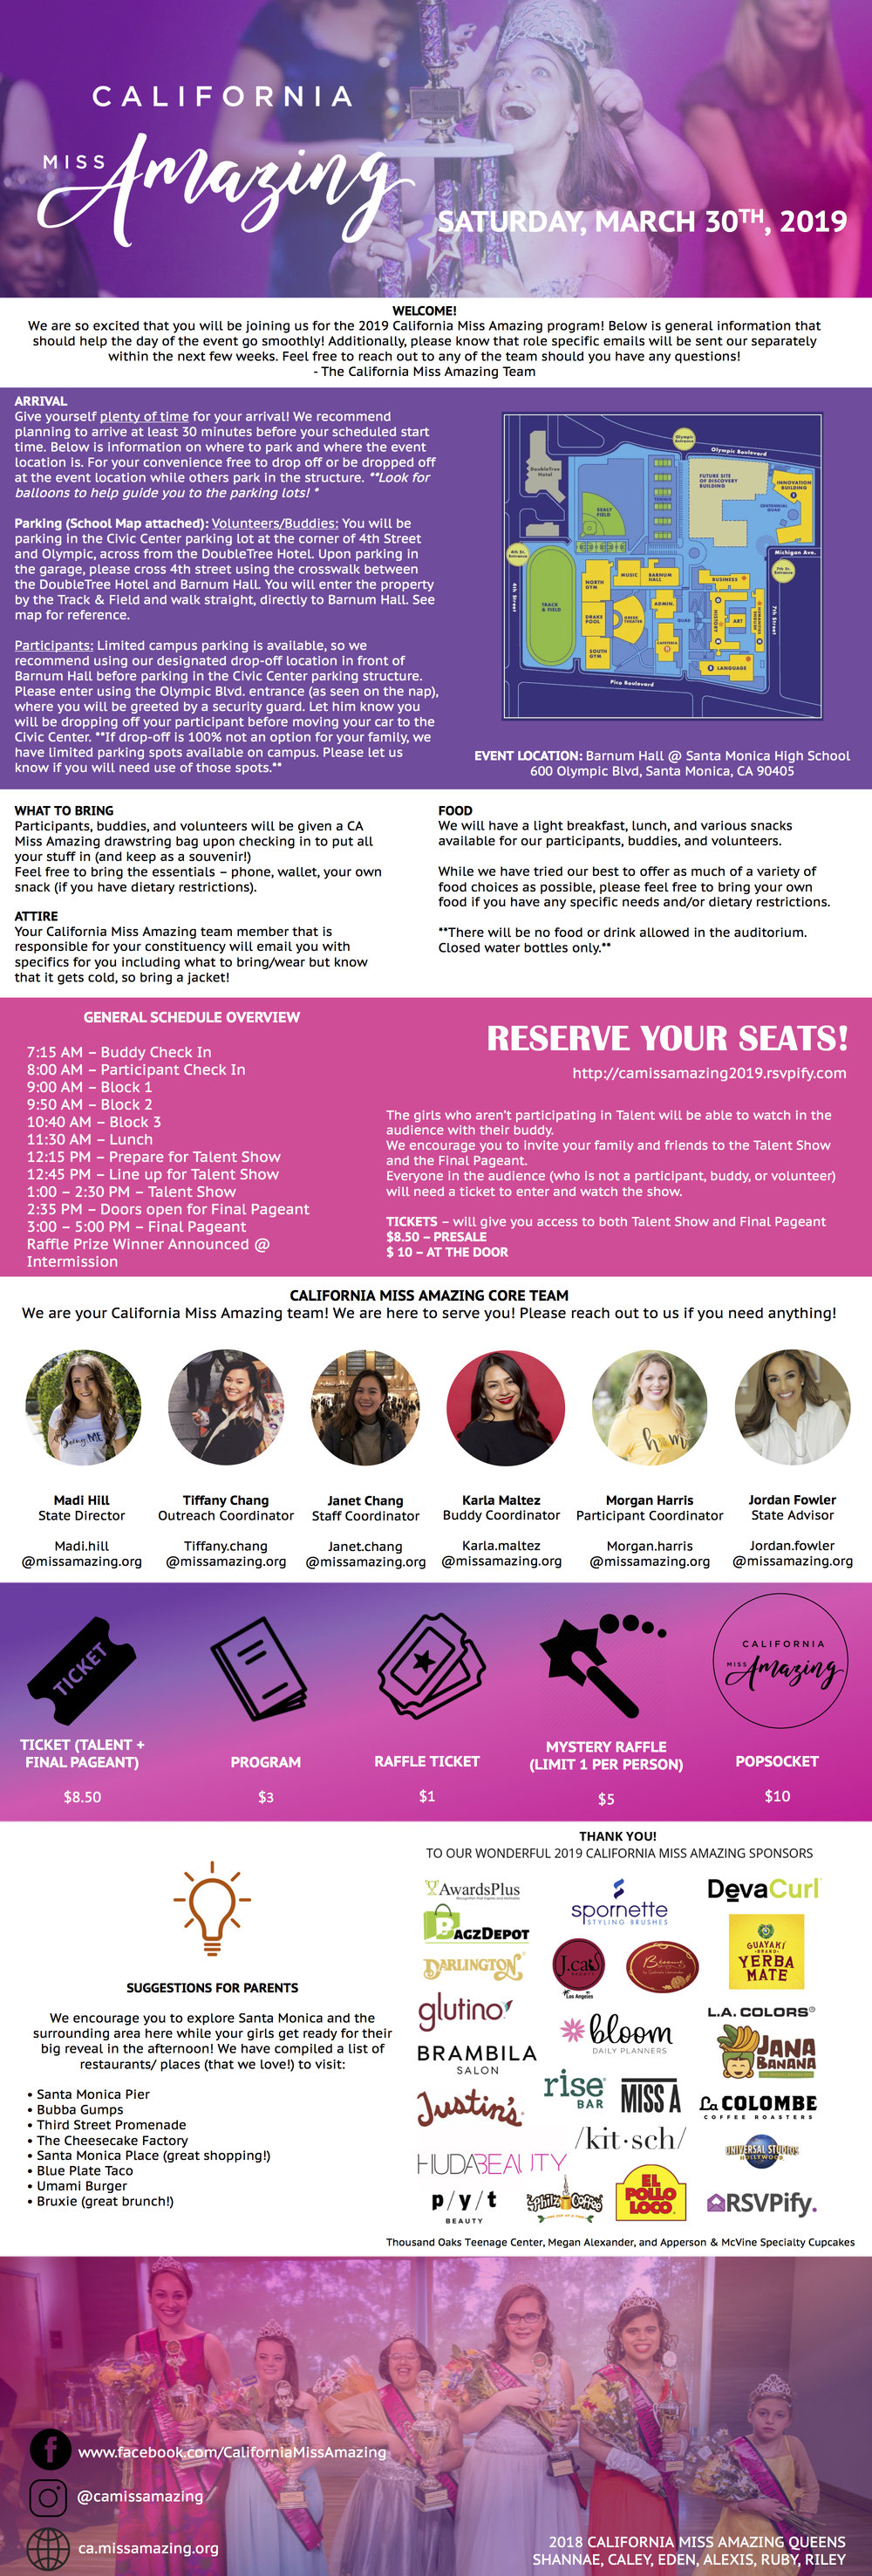 2019 CAMAP ONE PAGER.jpg